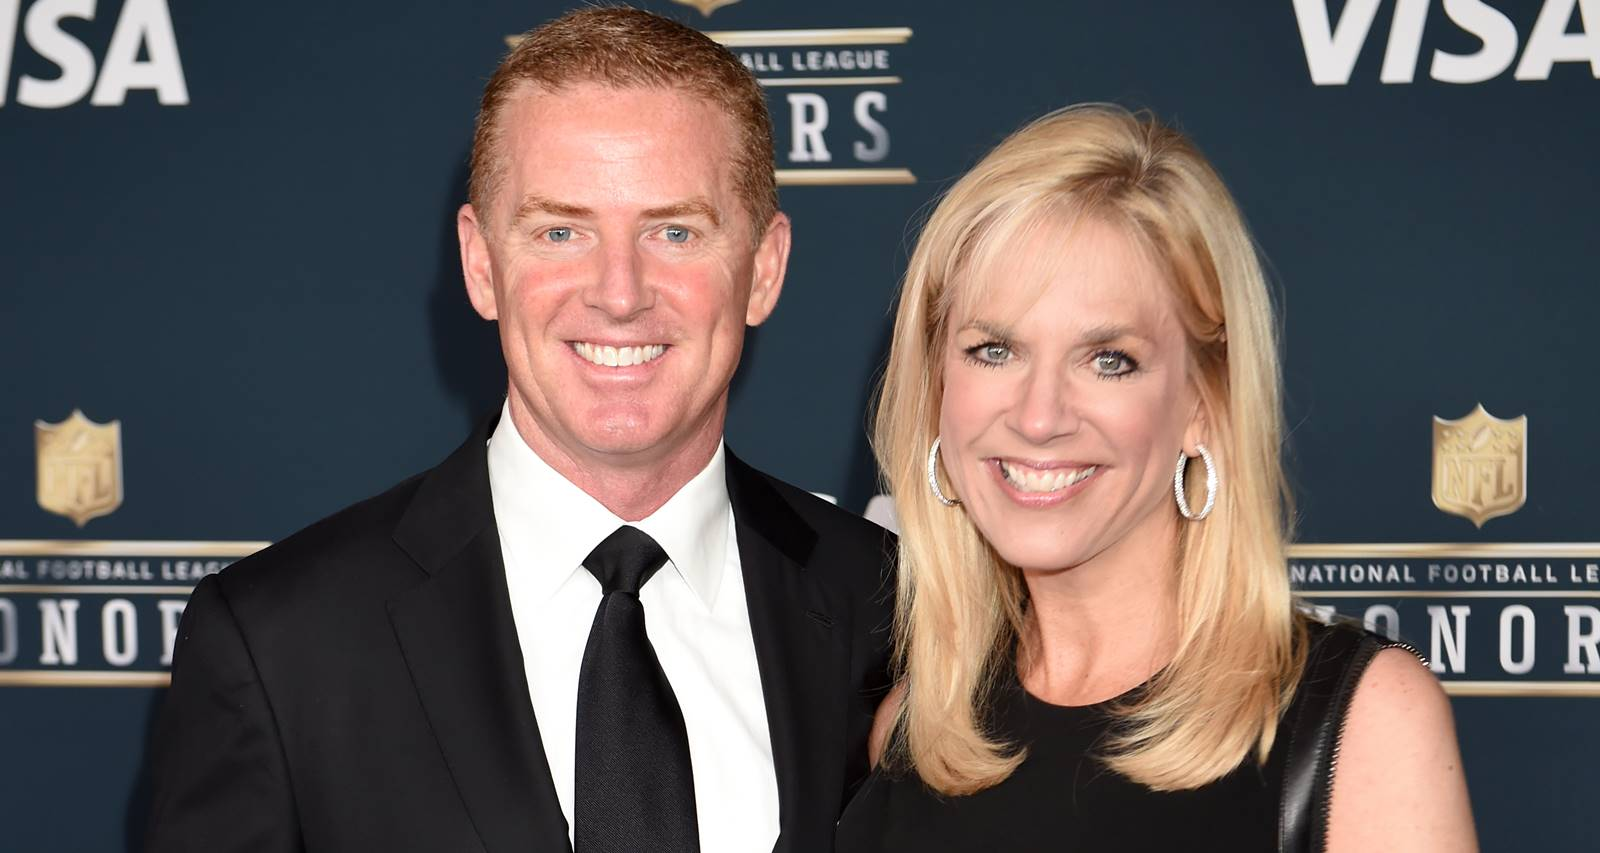 Jason Garrett's Wife: Brill Garrett Wiki, Age, Family, Education and Facts To Know